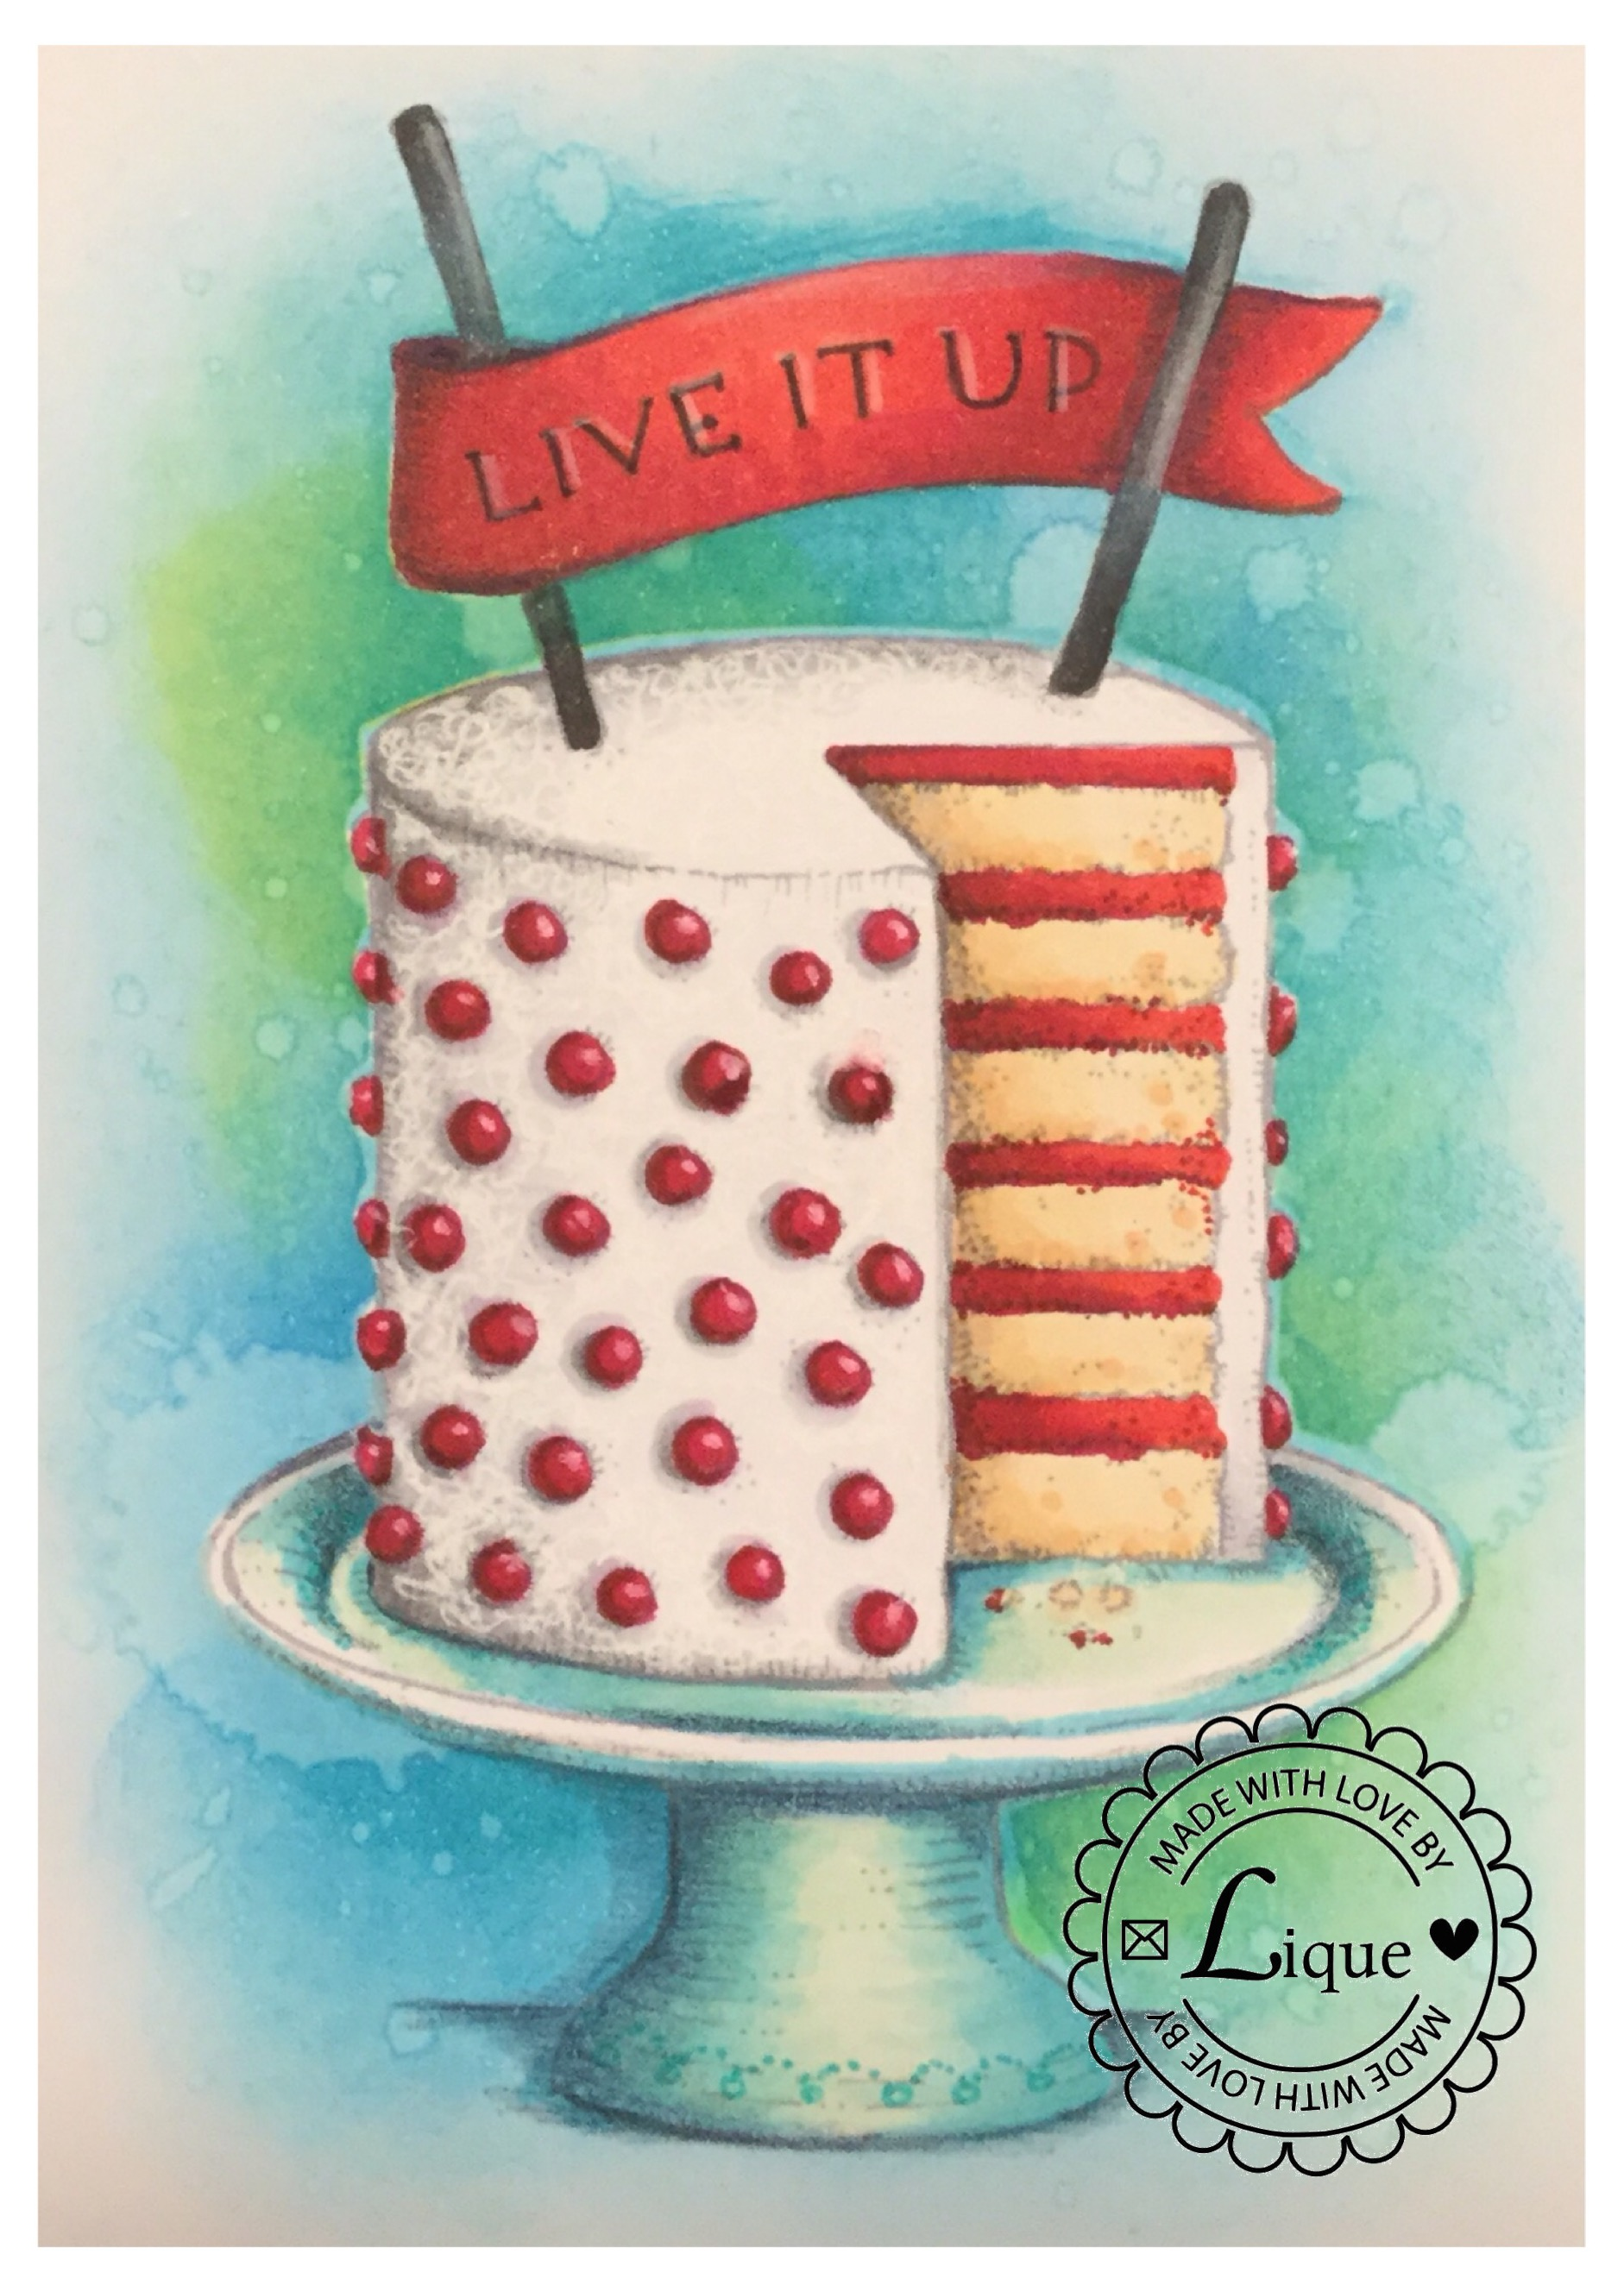 Live it up cake